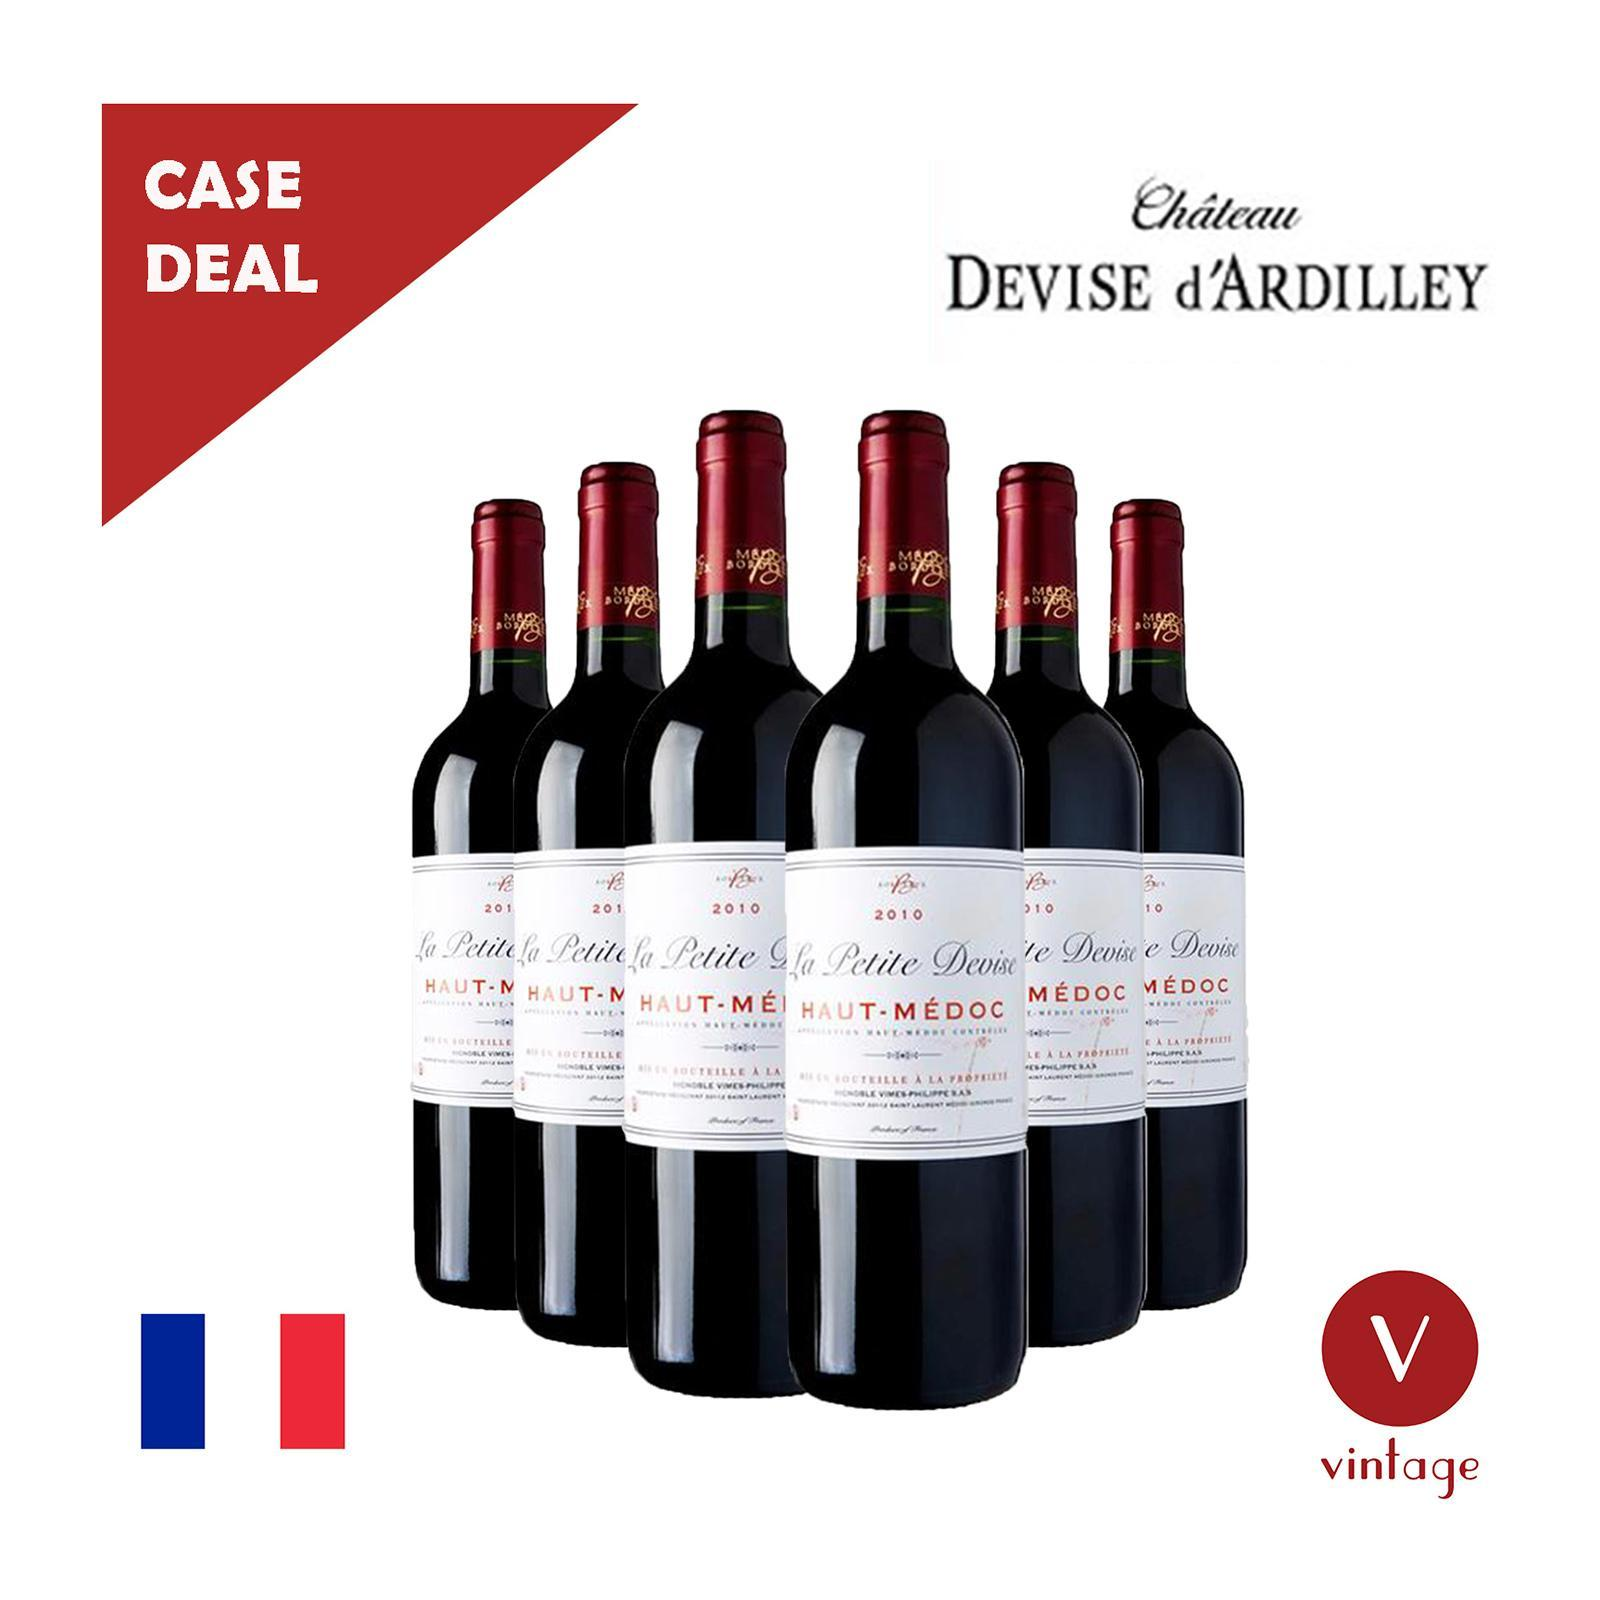 Chateau Devise d'Ardilley Petite Devise Bordeaux - Case - By The Vintage Wine Club